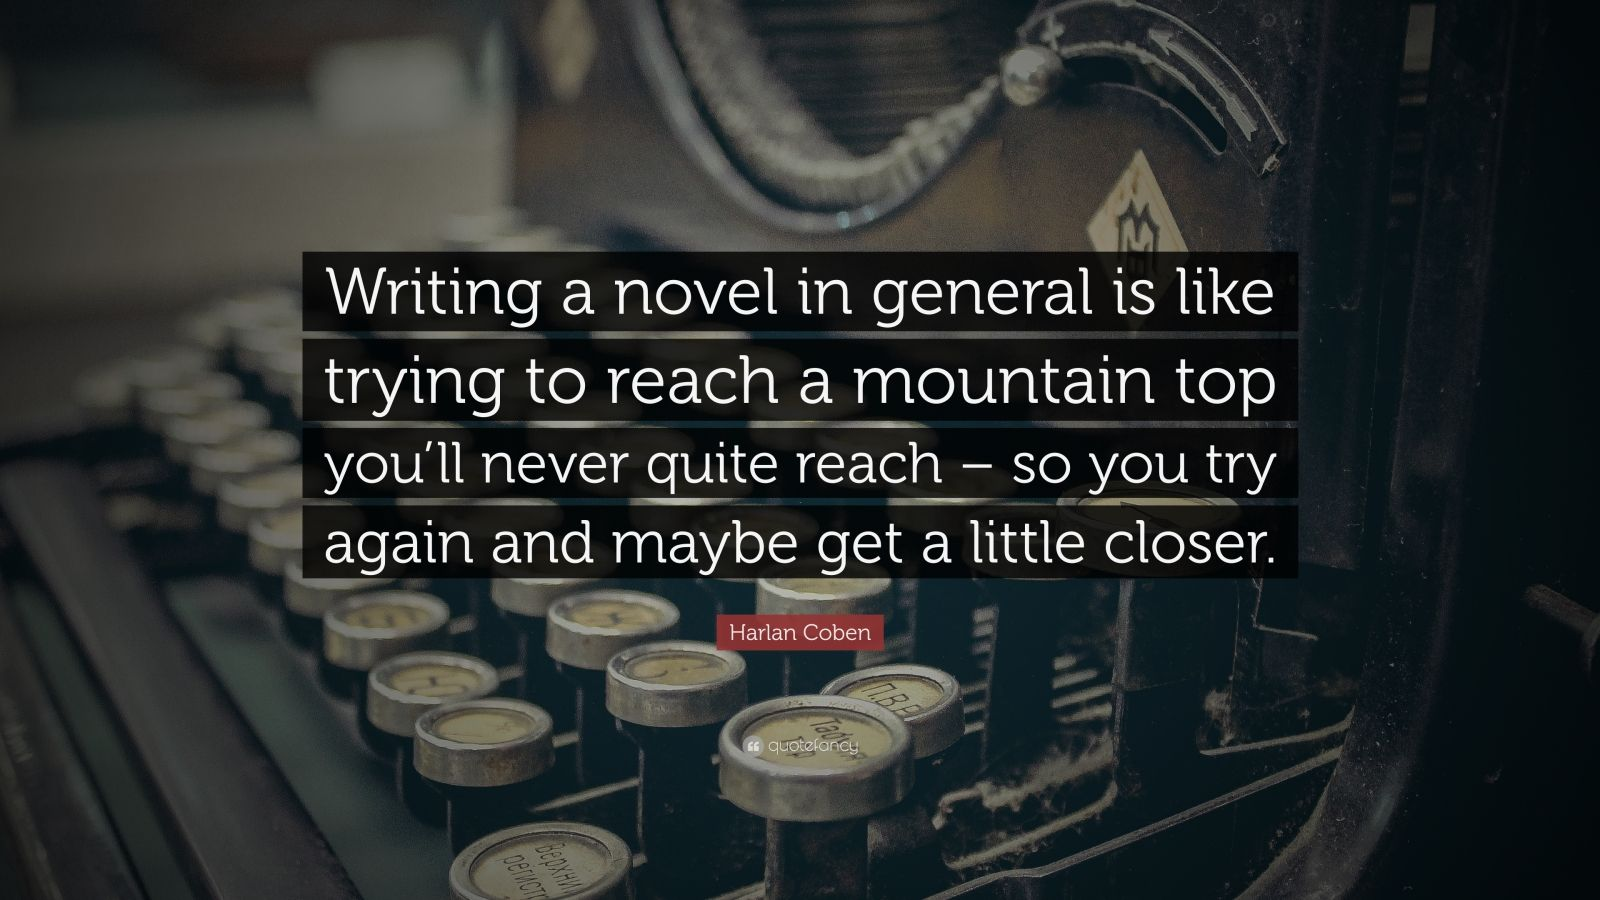 """Harlan Coben Quote: """"Writing a novel in general is like trying to reach a mountain top you'll never quite reach – so you try again and maybe get a little closer."""""""